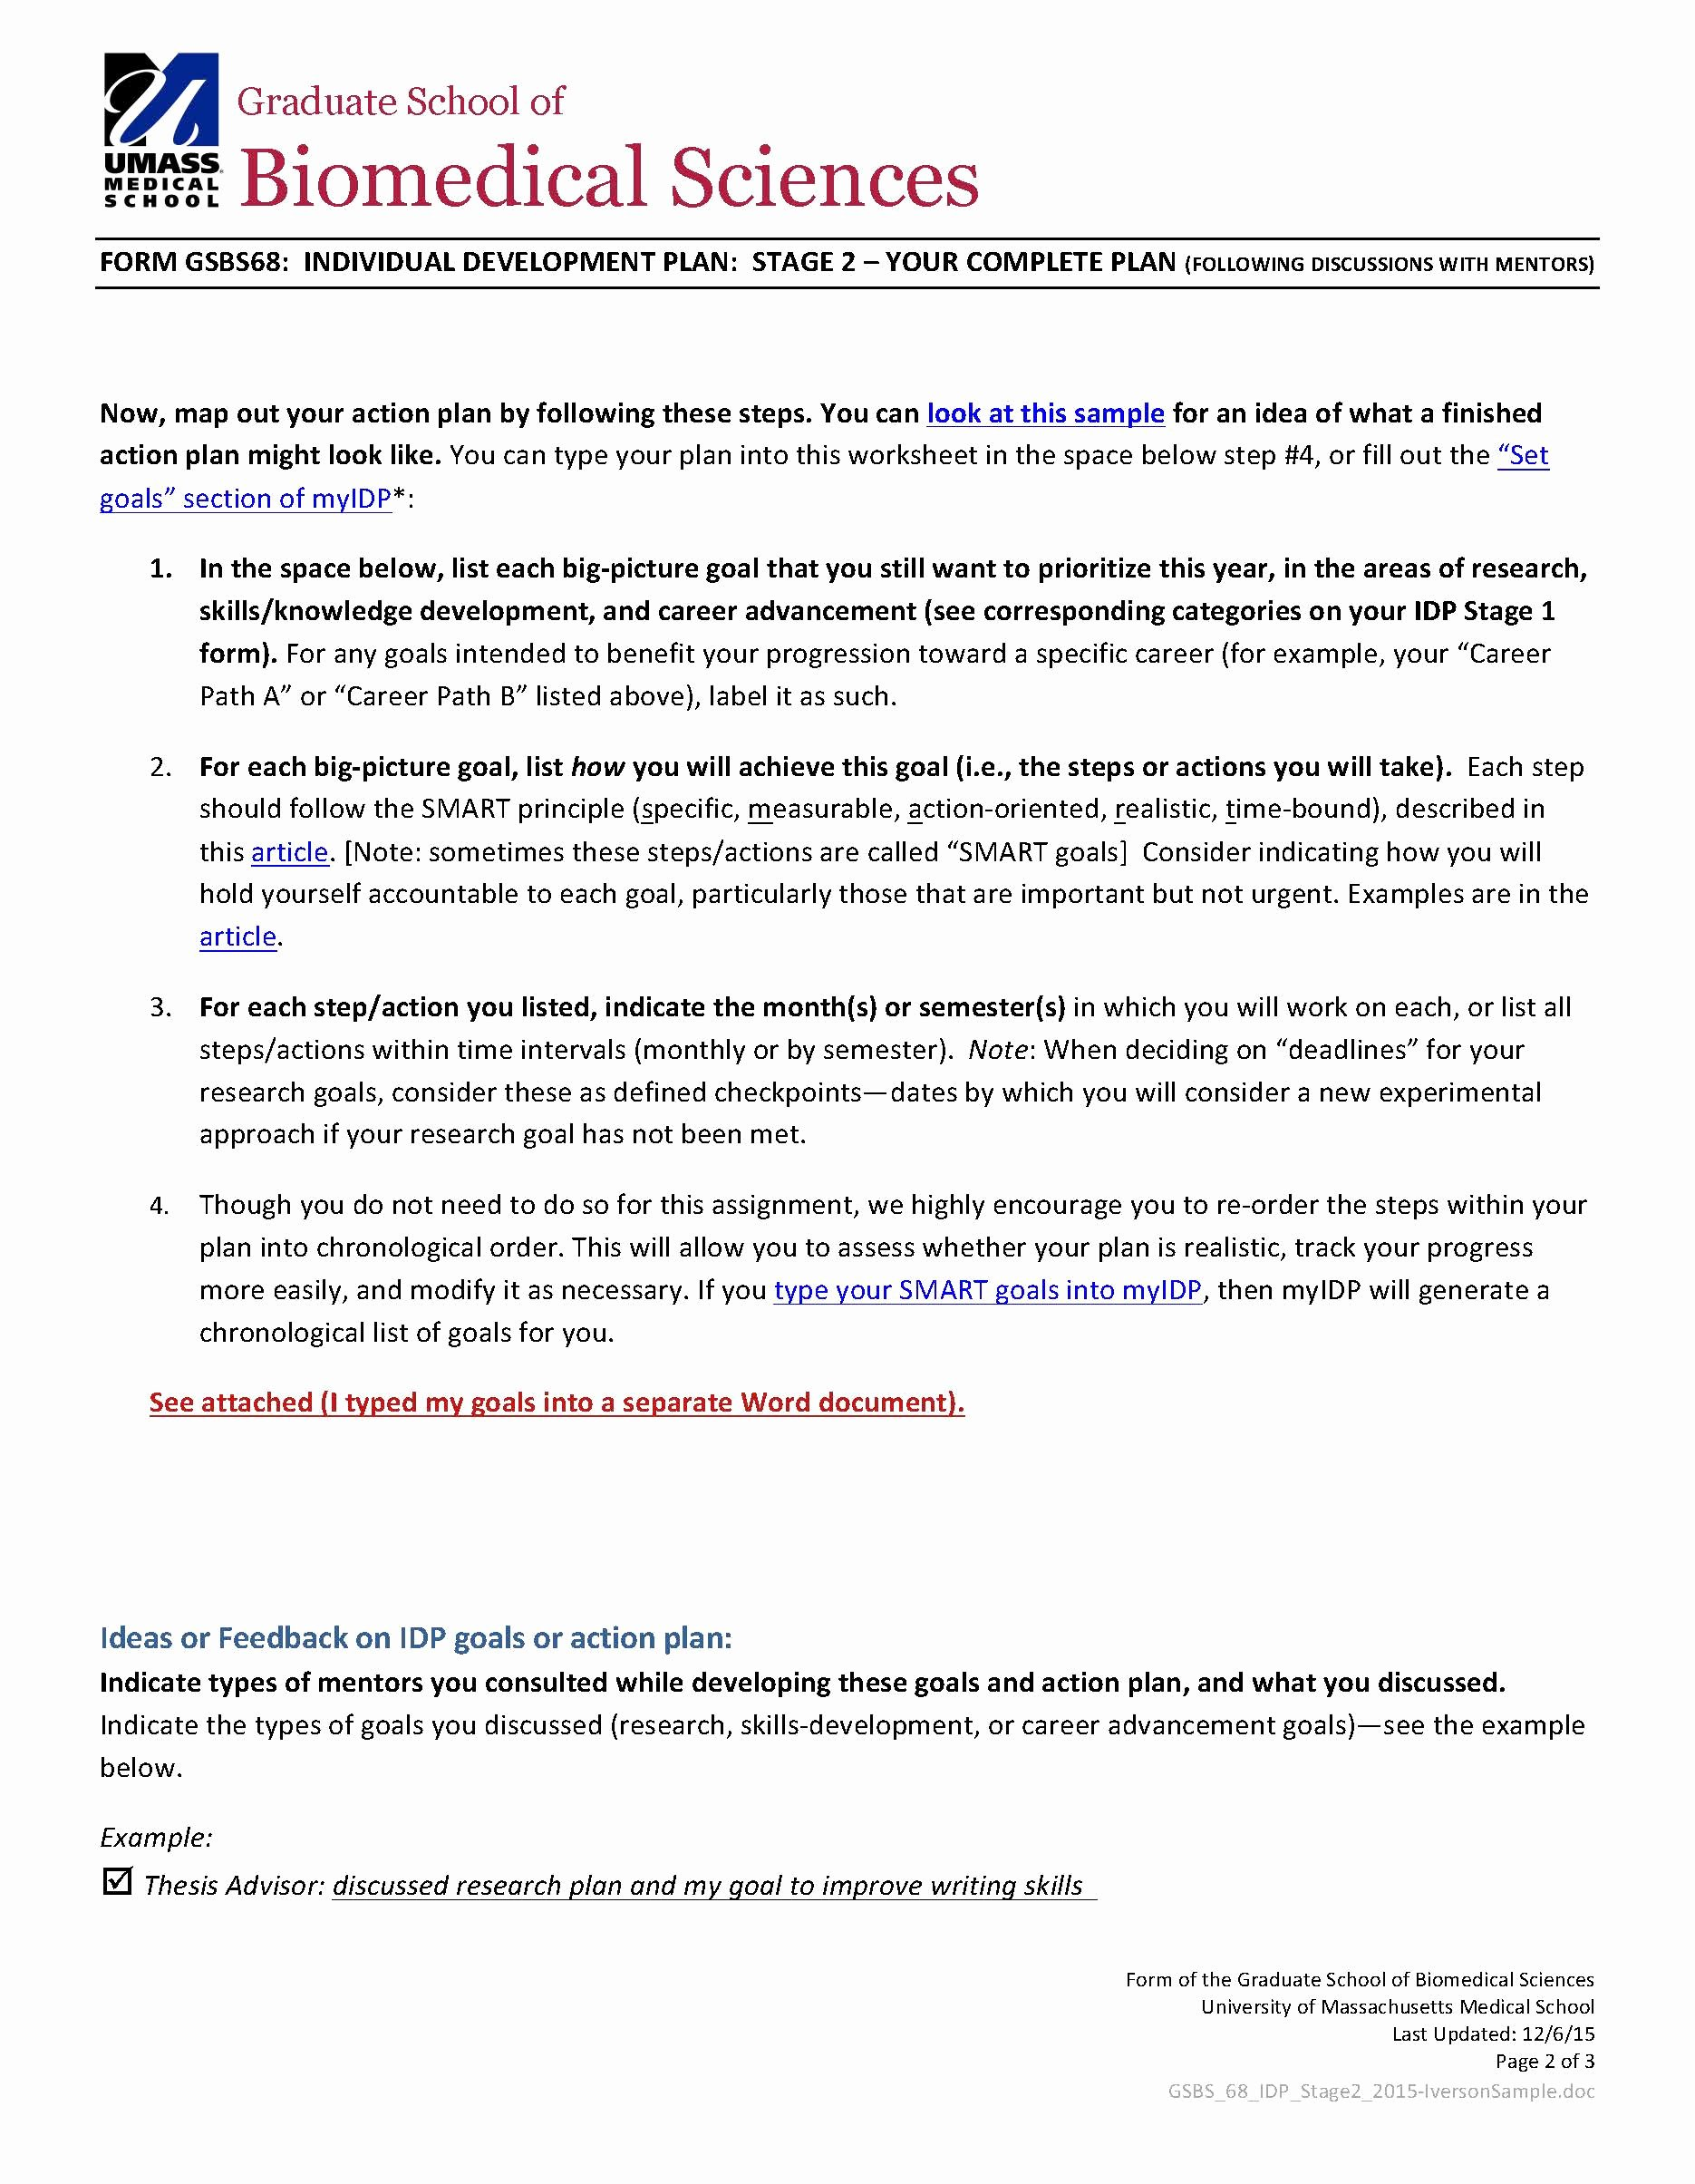 Professional Smart Goal Examples Fresh Gsbs Student Idp Sample Stage 2 form